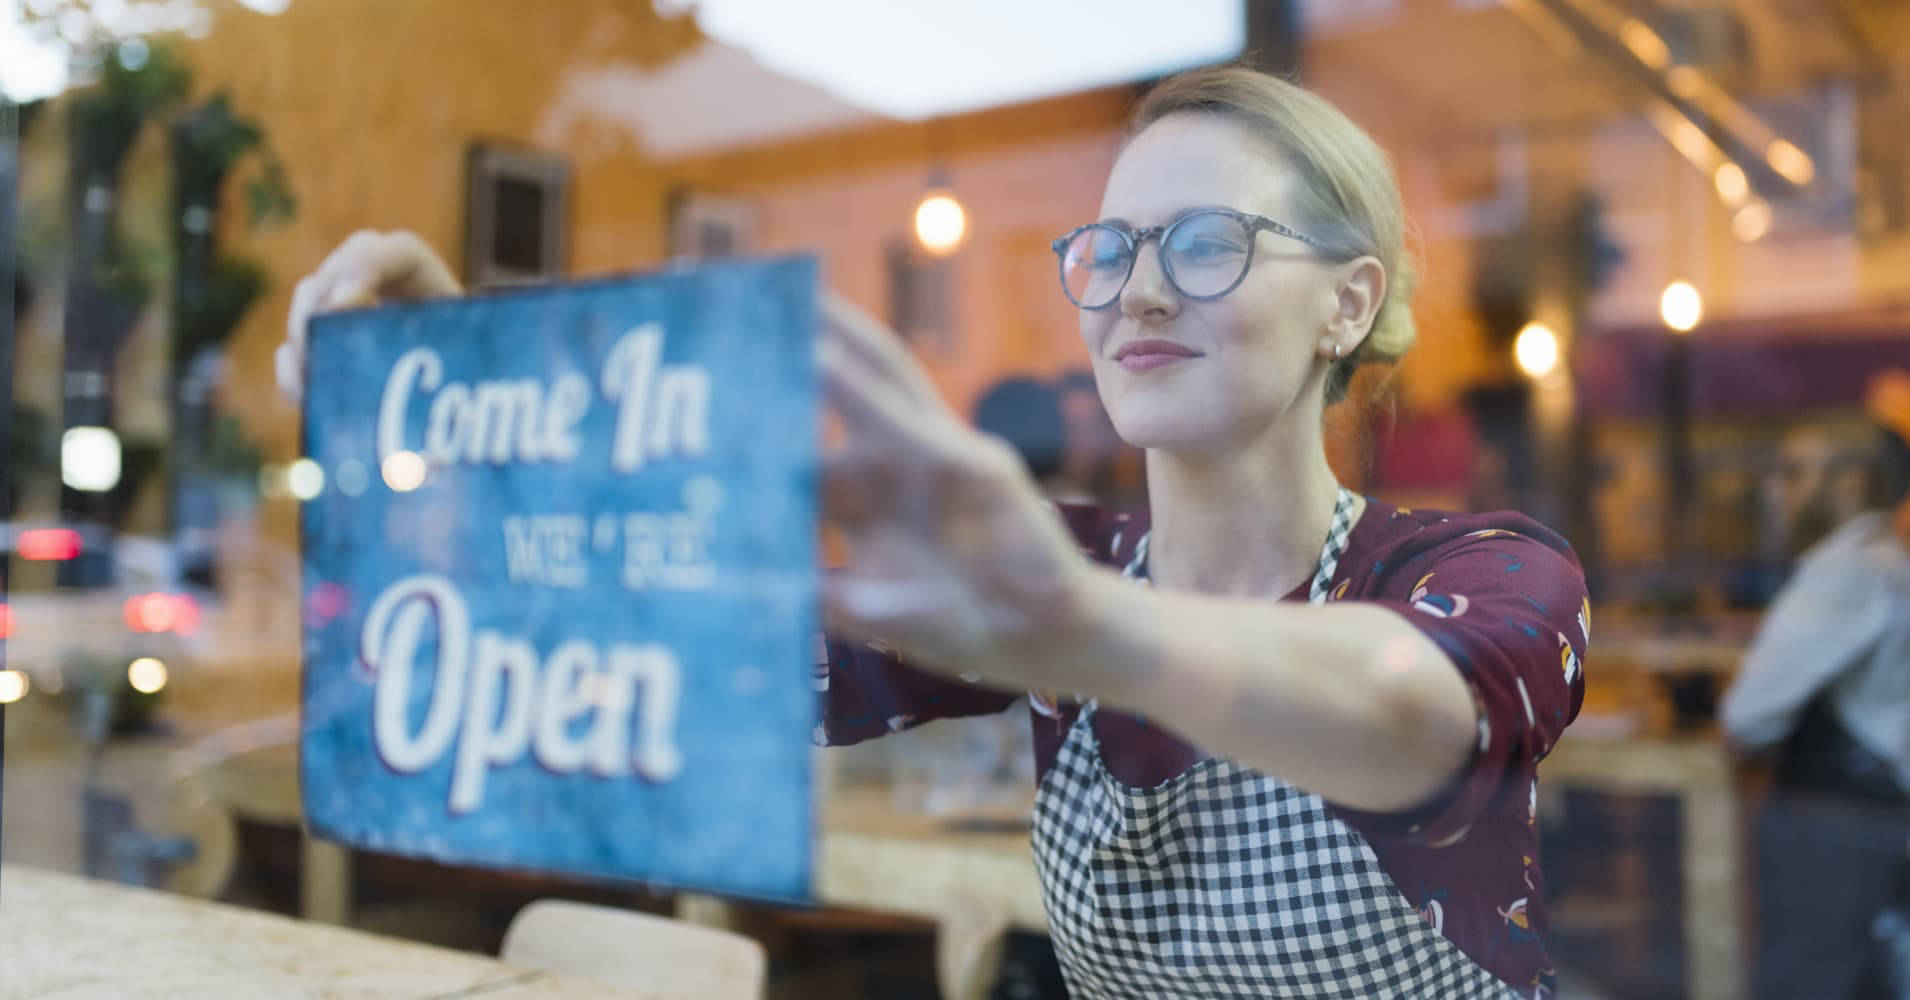 Business owner setting up open sign in cafe window